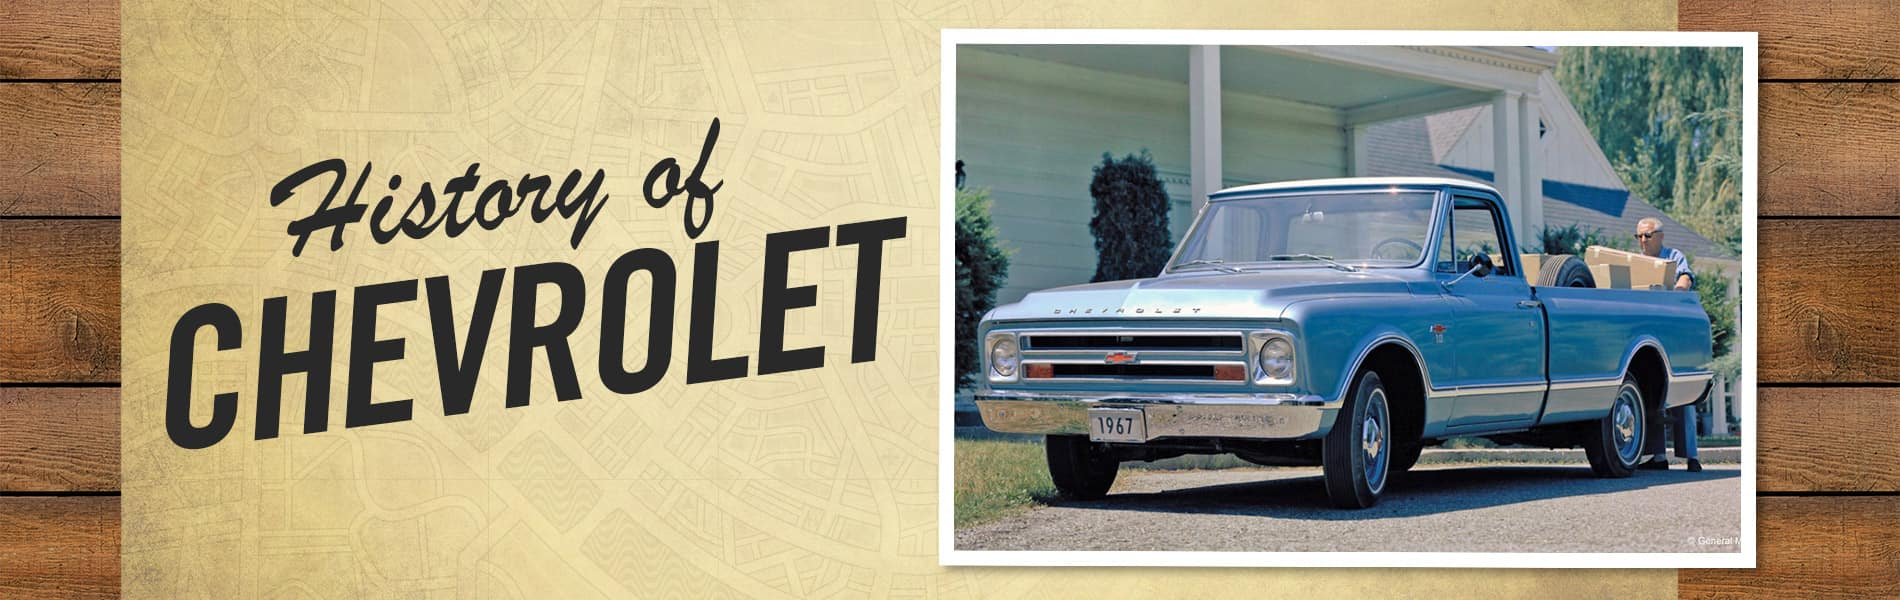 History of Chevrolet | Fort Wayne, IN